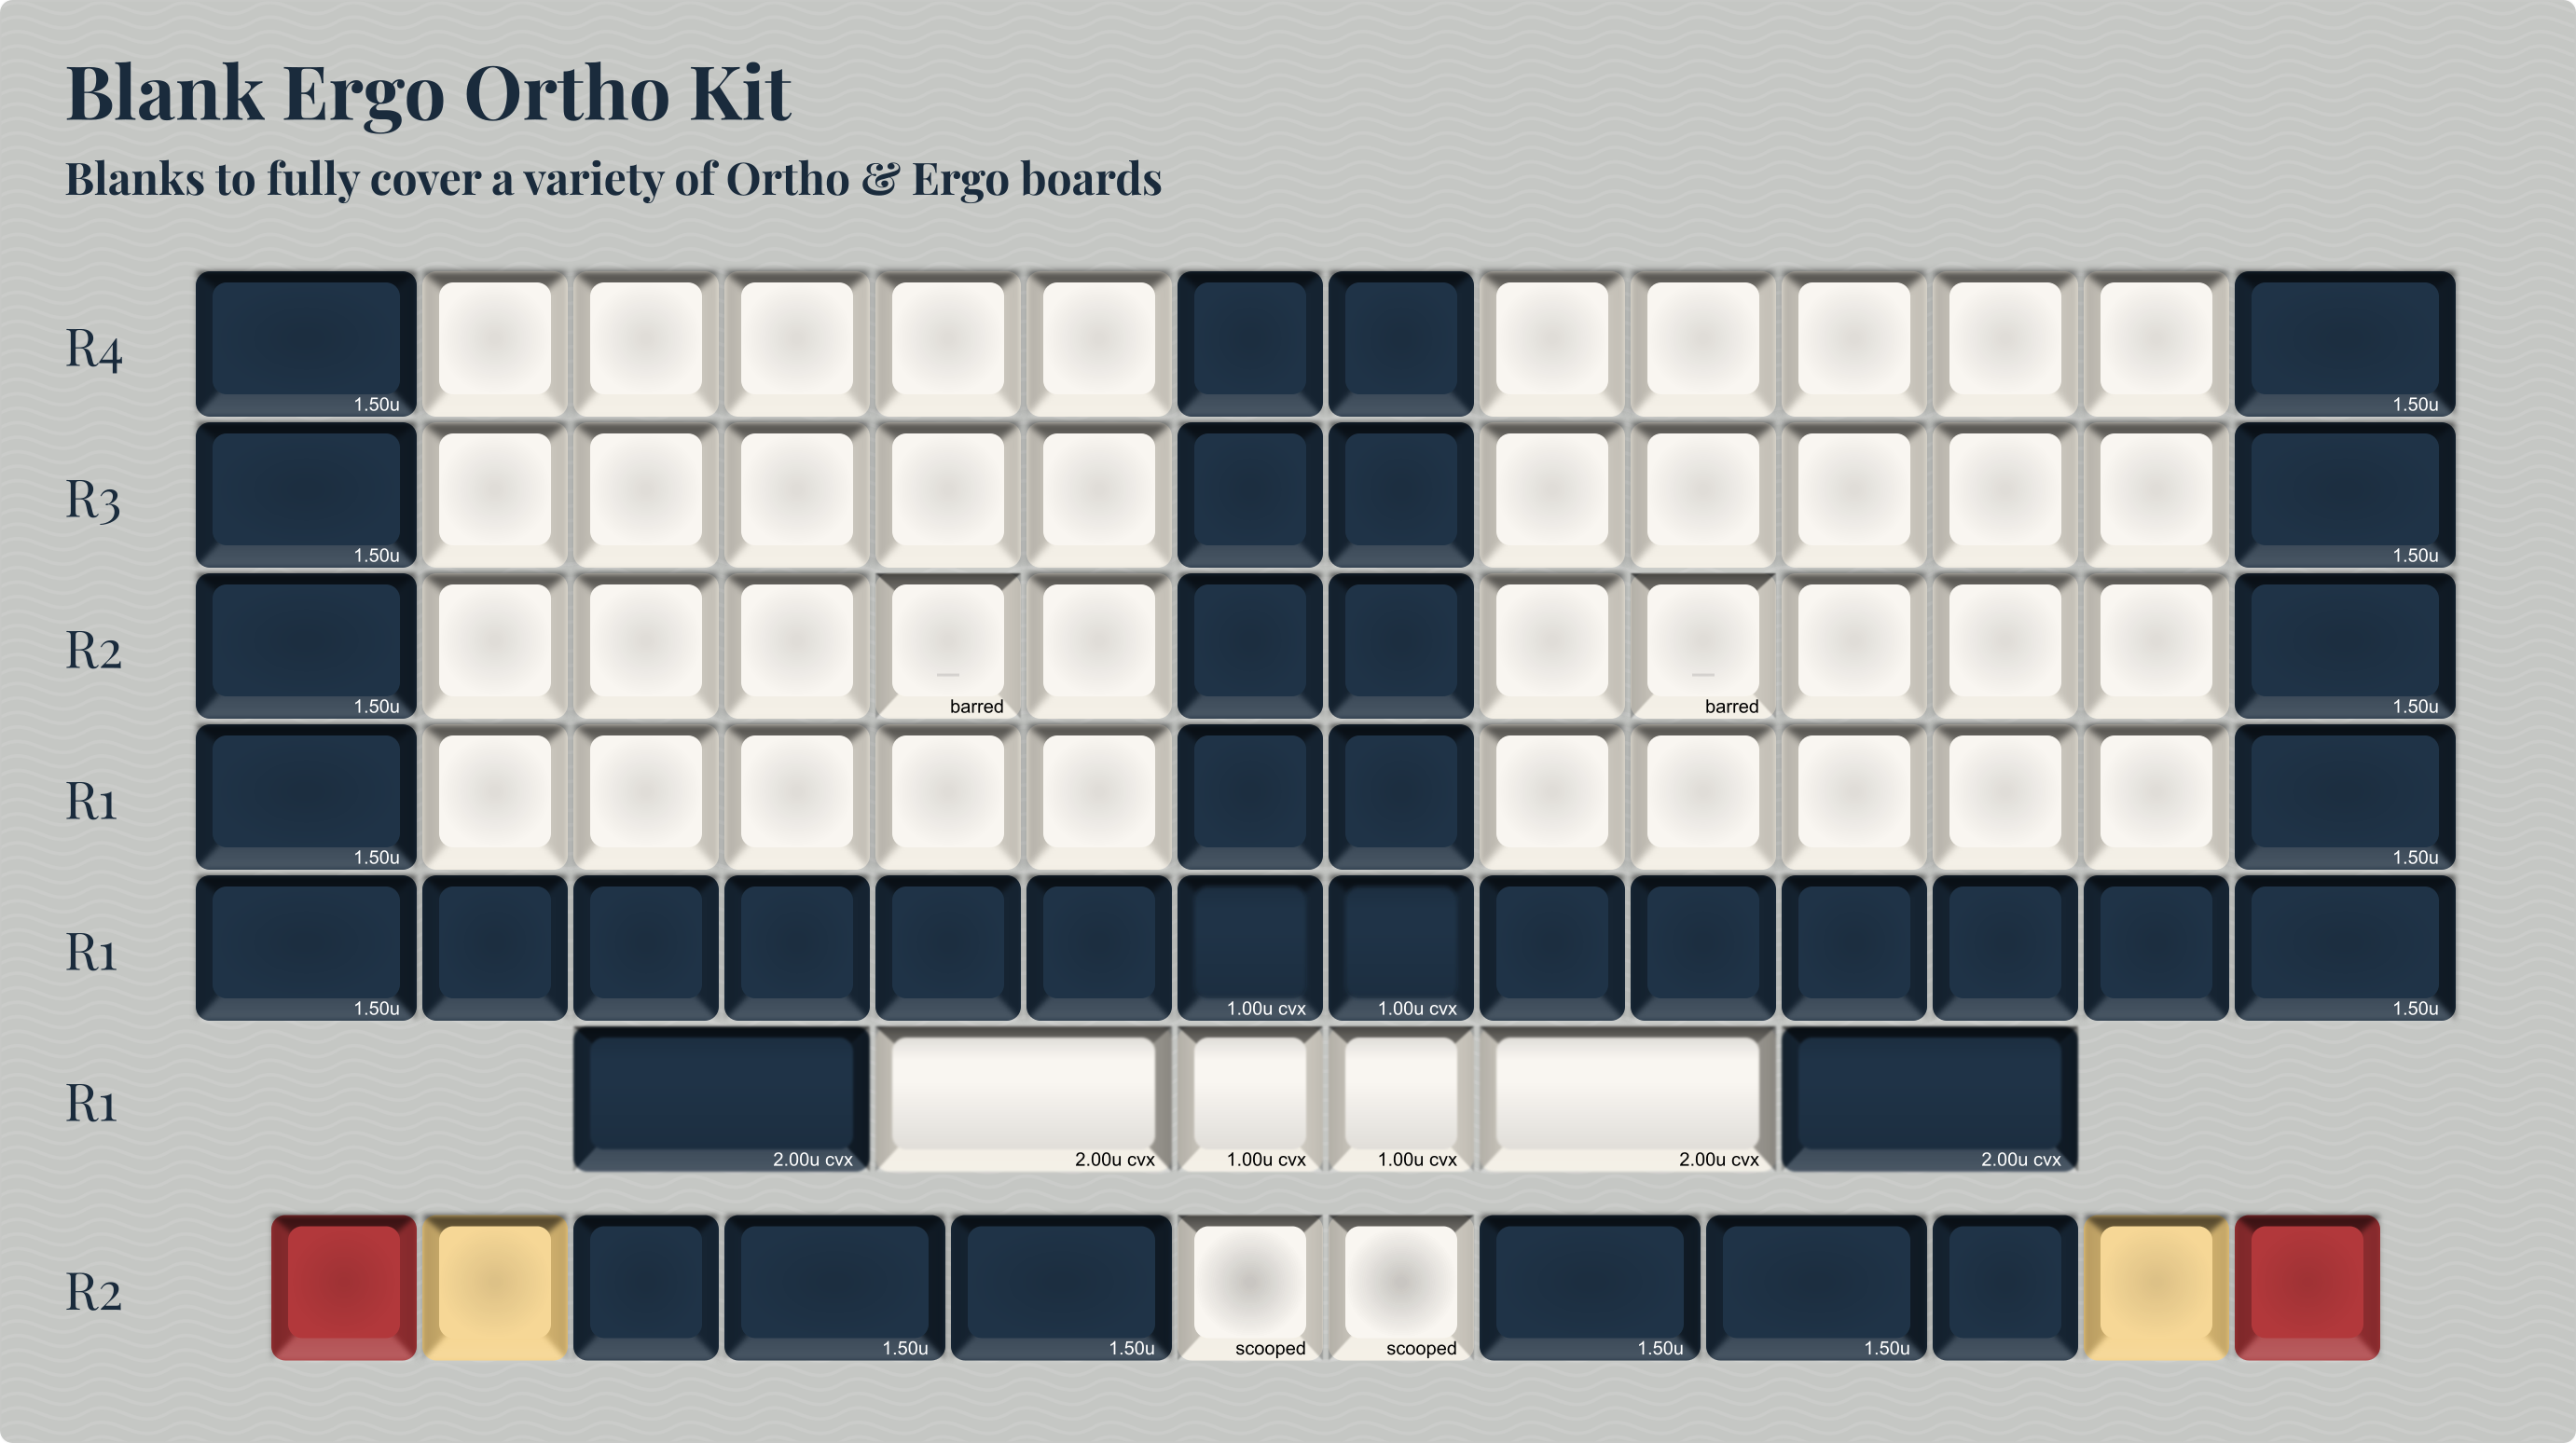 Blank Ergo Ortho Kit